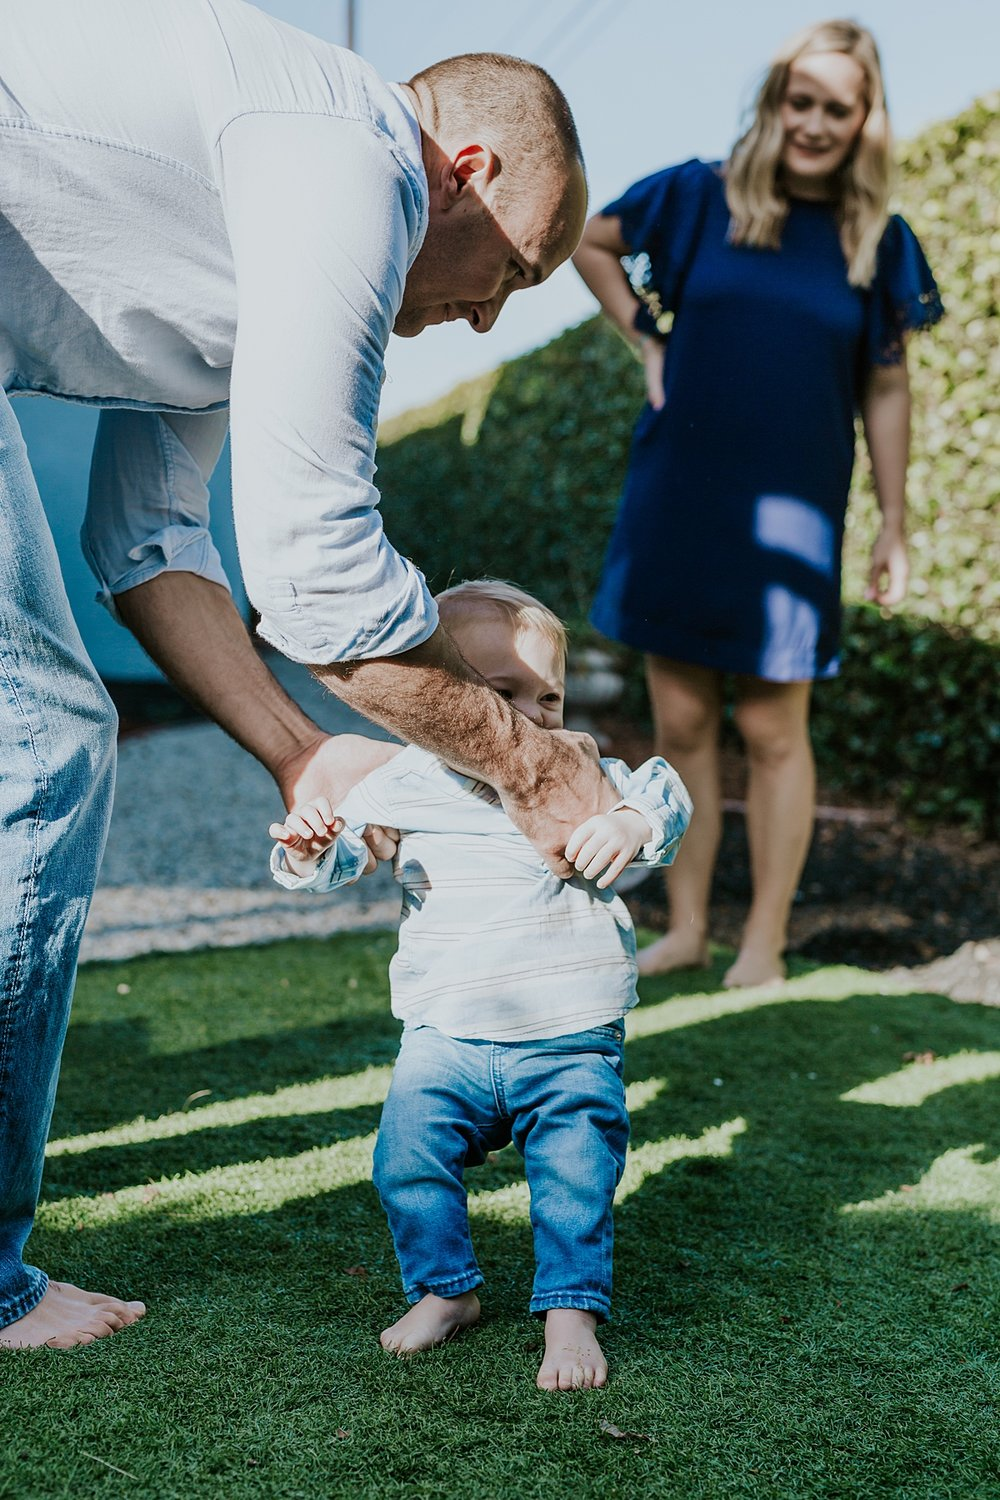 Orange County family photographer. candid photo of dad moving son while mom stands in the background during in home family photo shoot in Huntington Beach